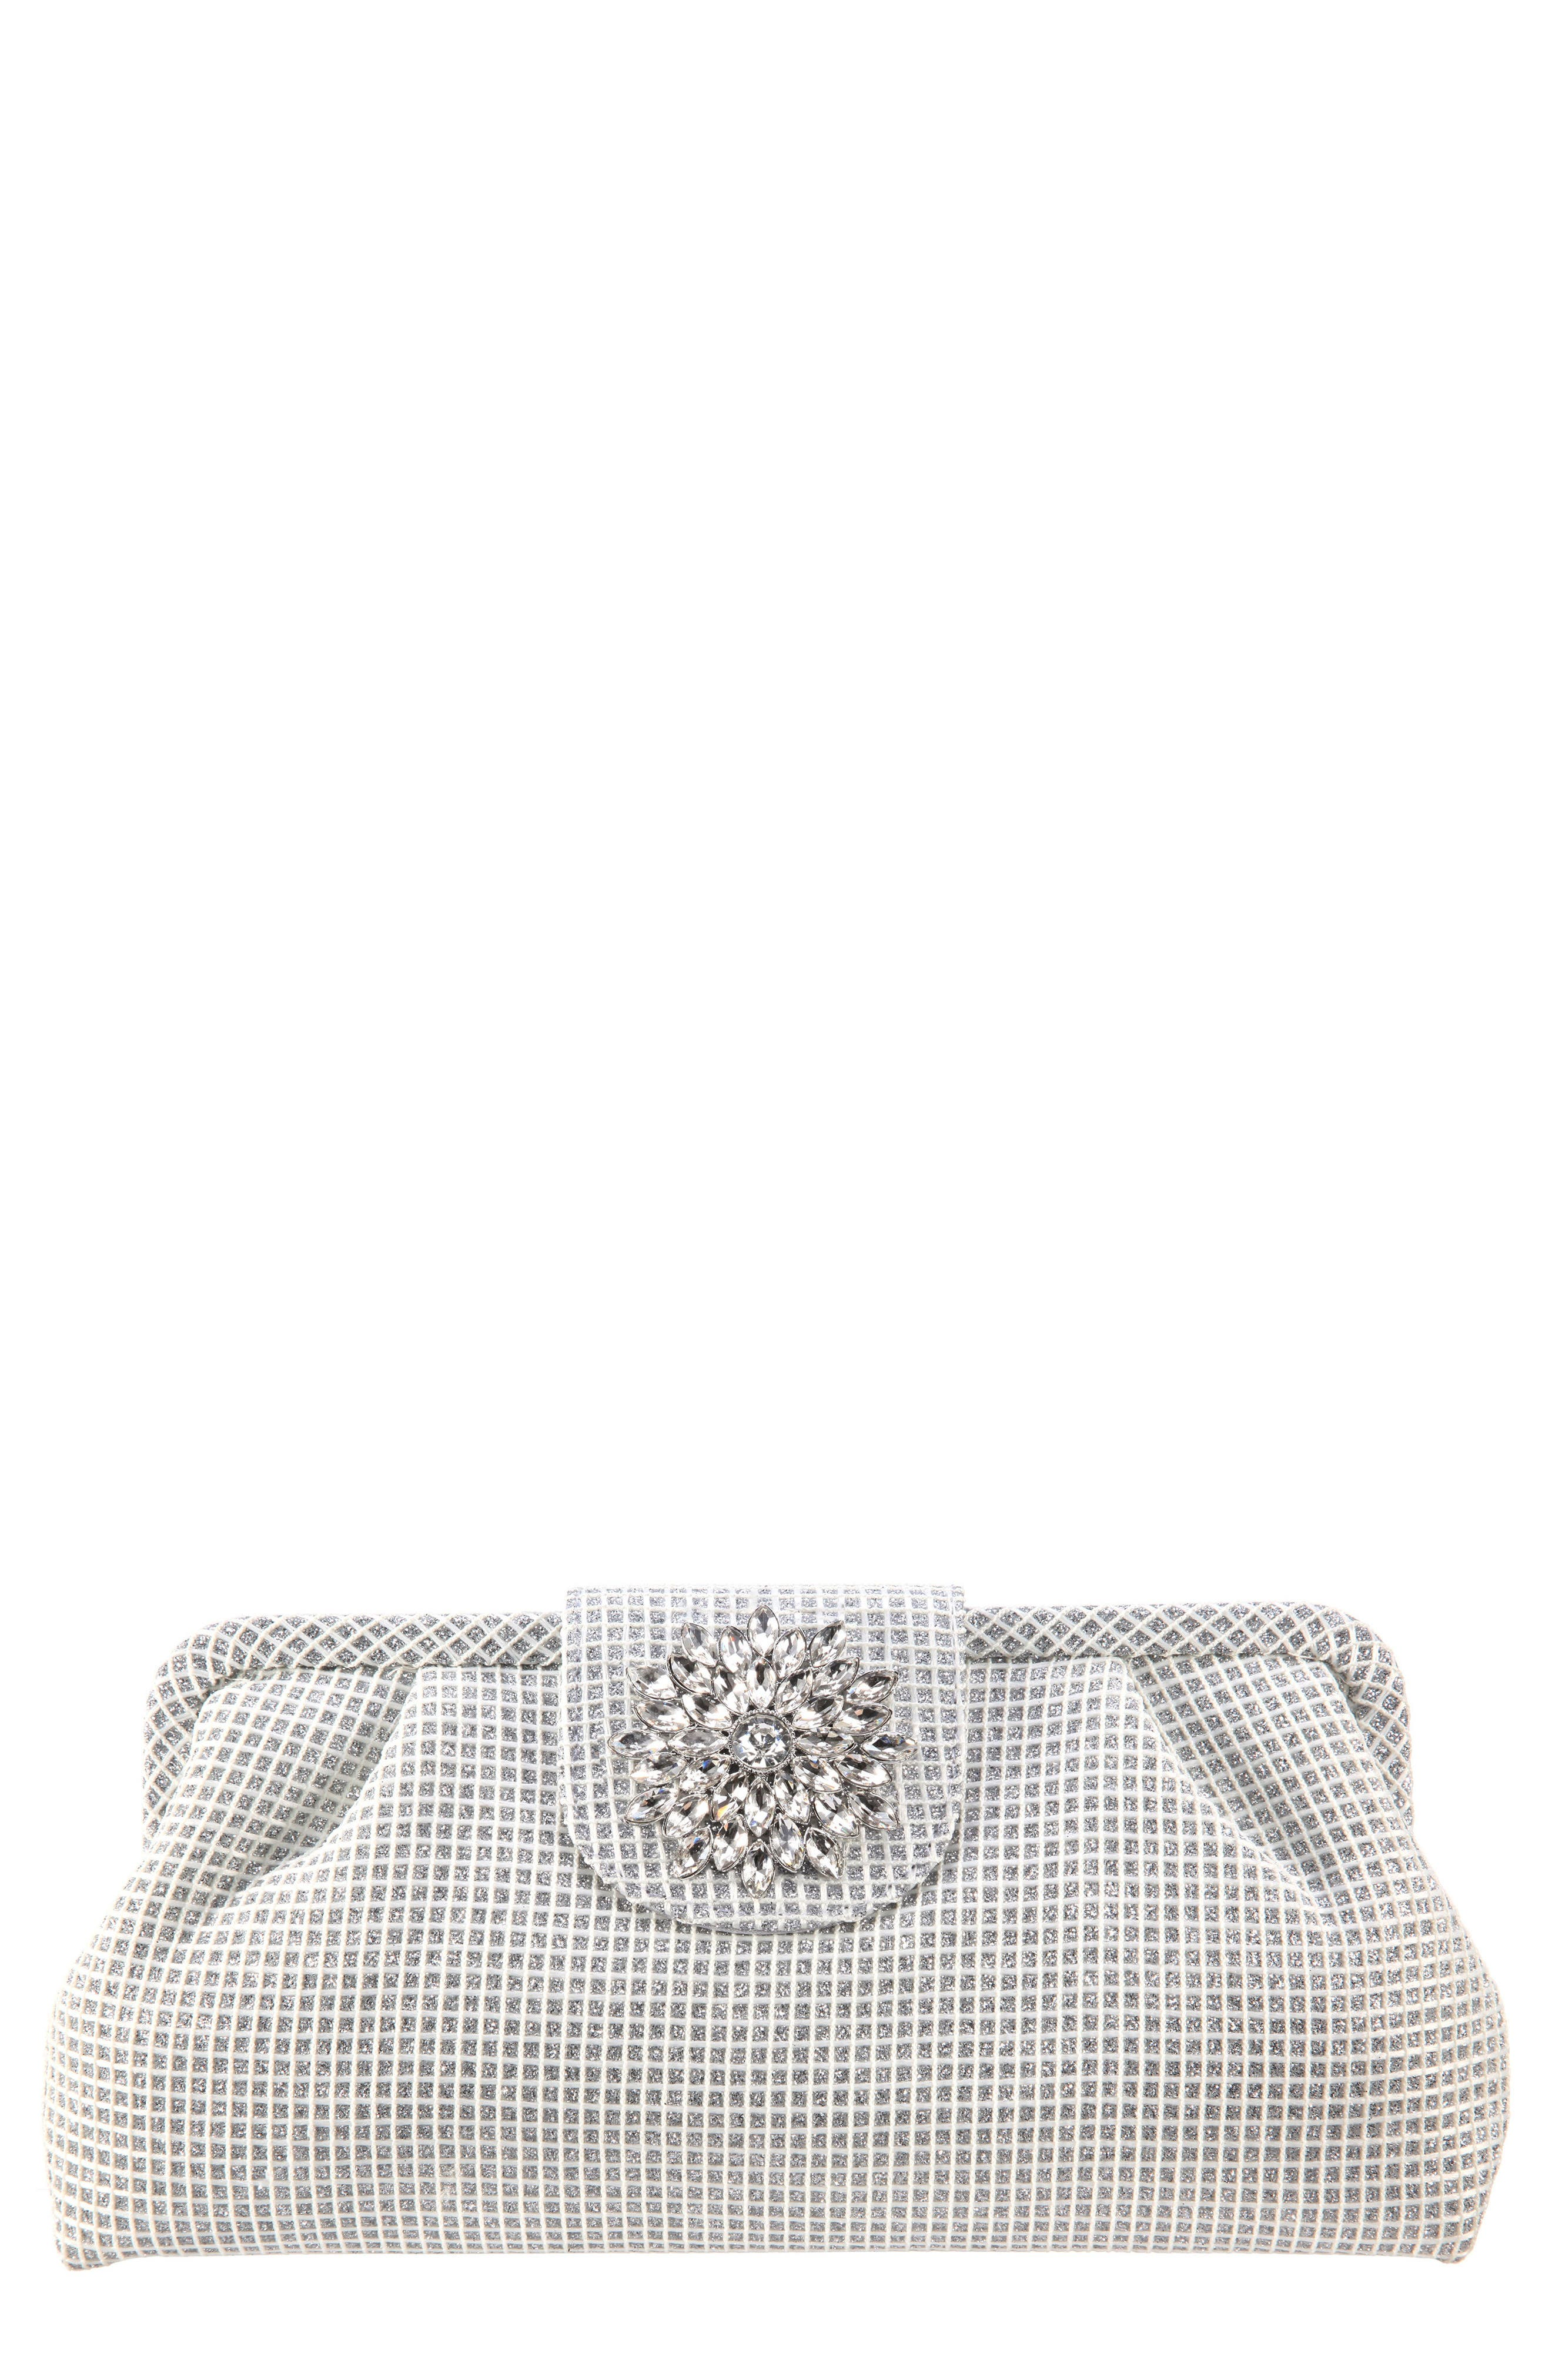 Hampton Embellished Frame Clutch, Main, color, SILVER